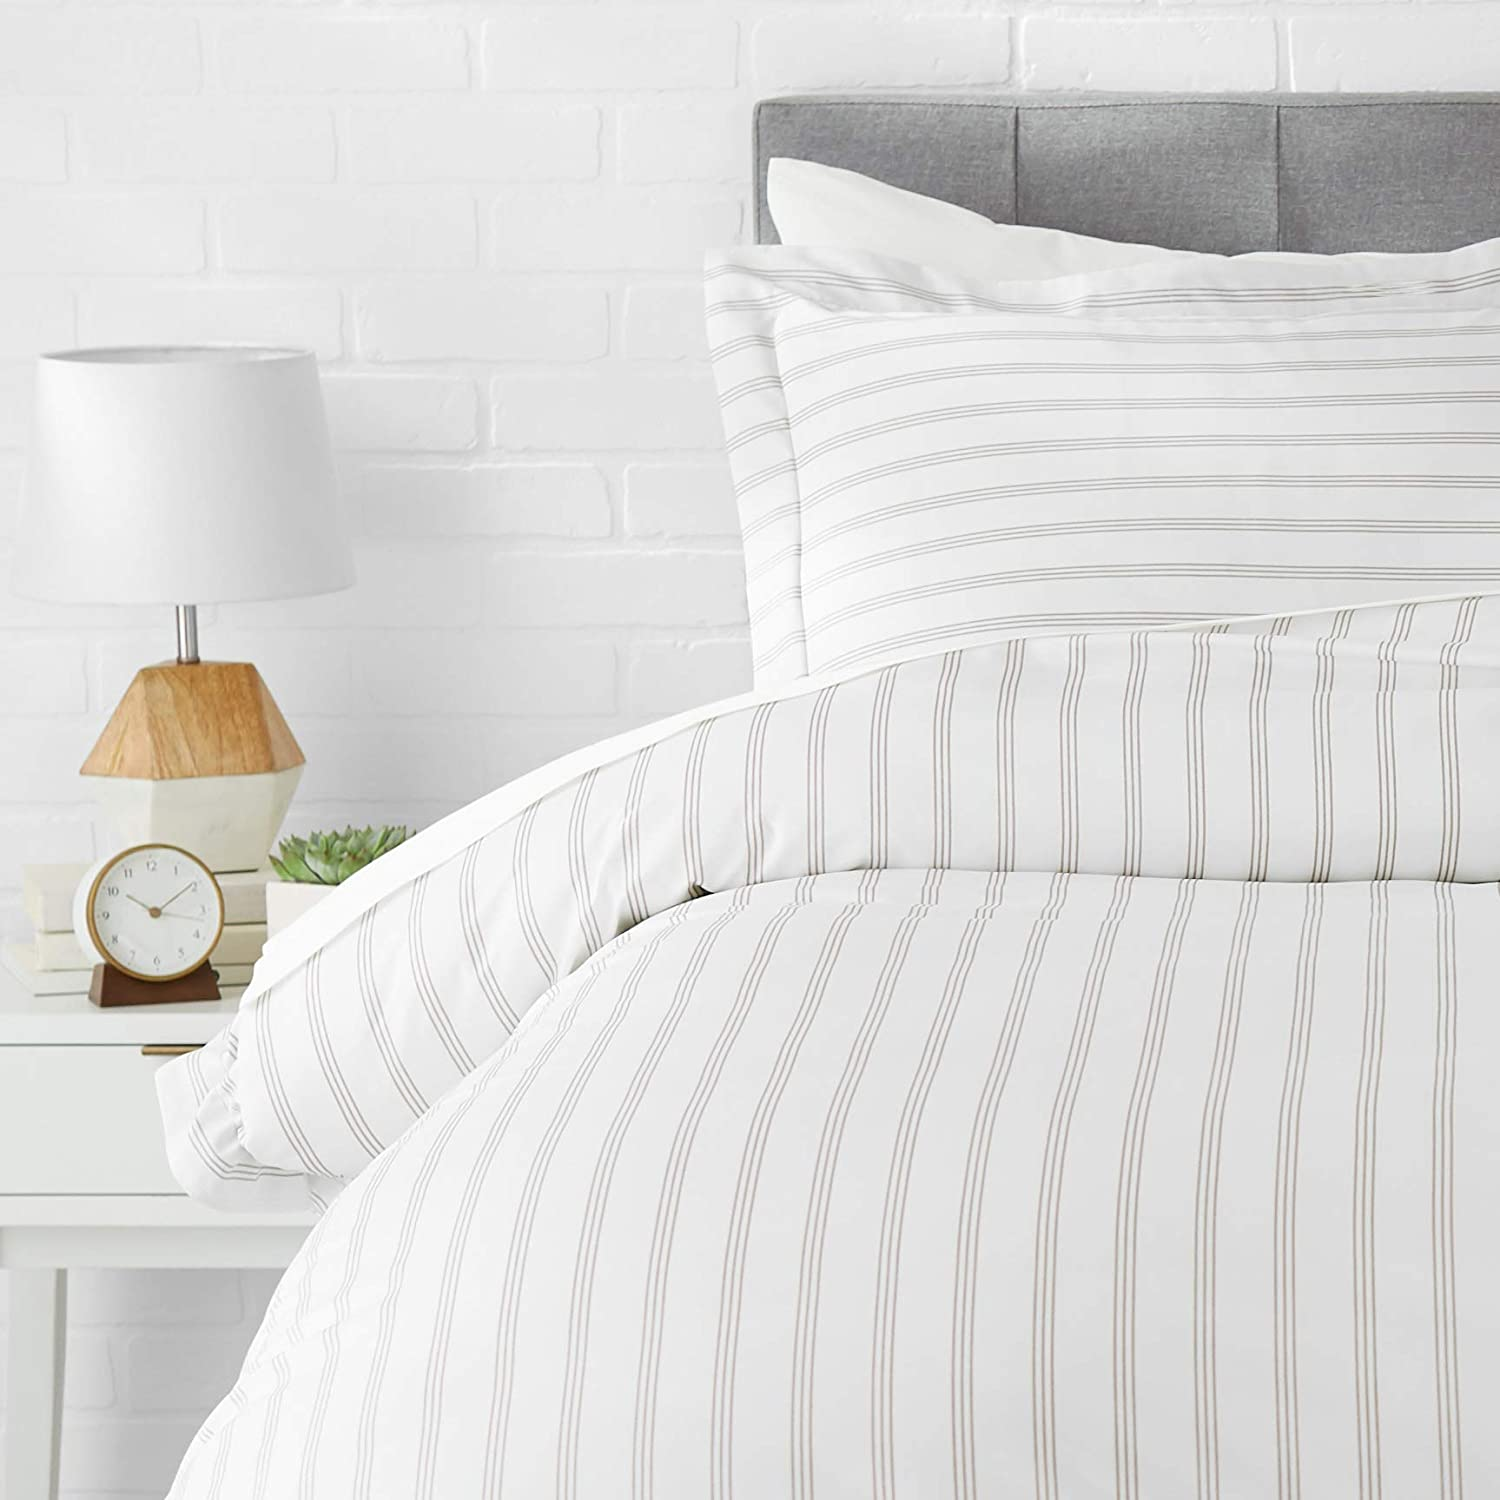 AmazonBasics Light-Weight Microfiber Duvet Cover Set - Twin/Twin XL, Taupe Stripe